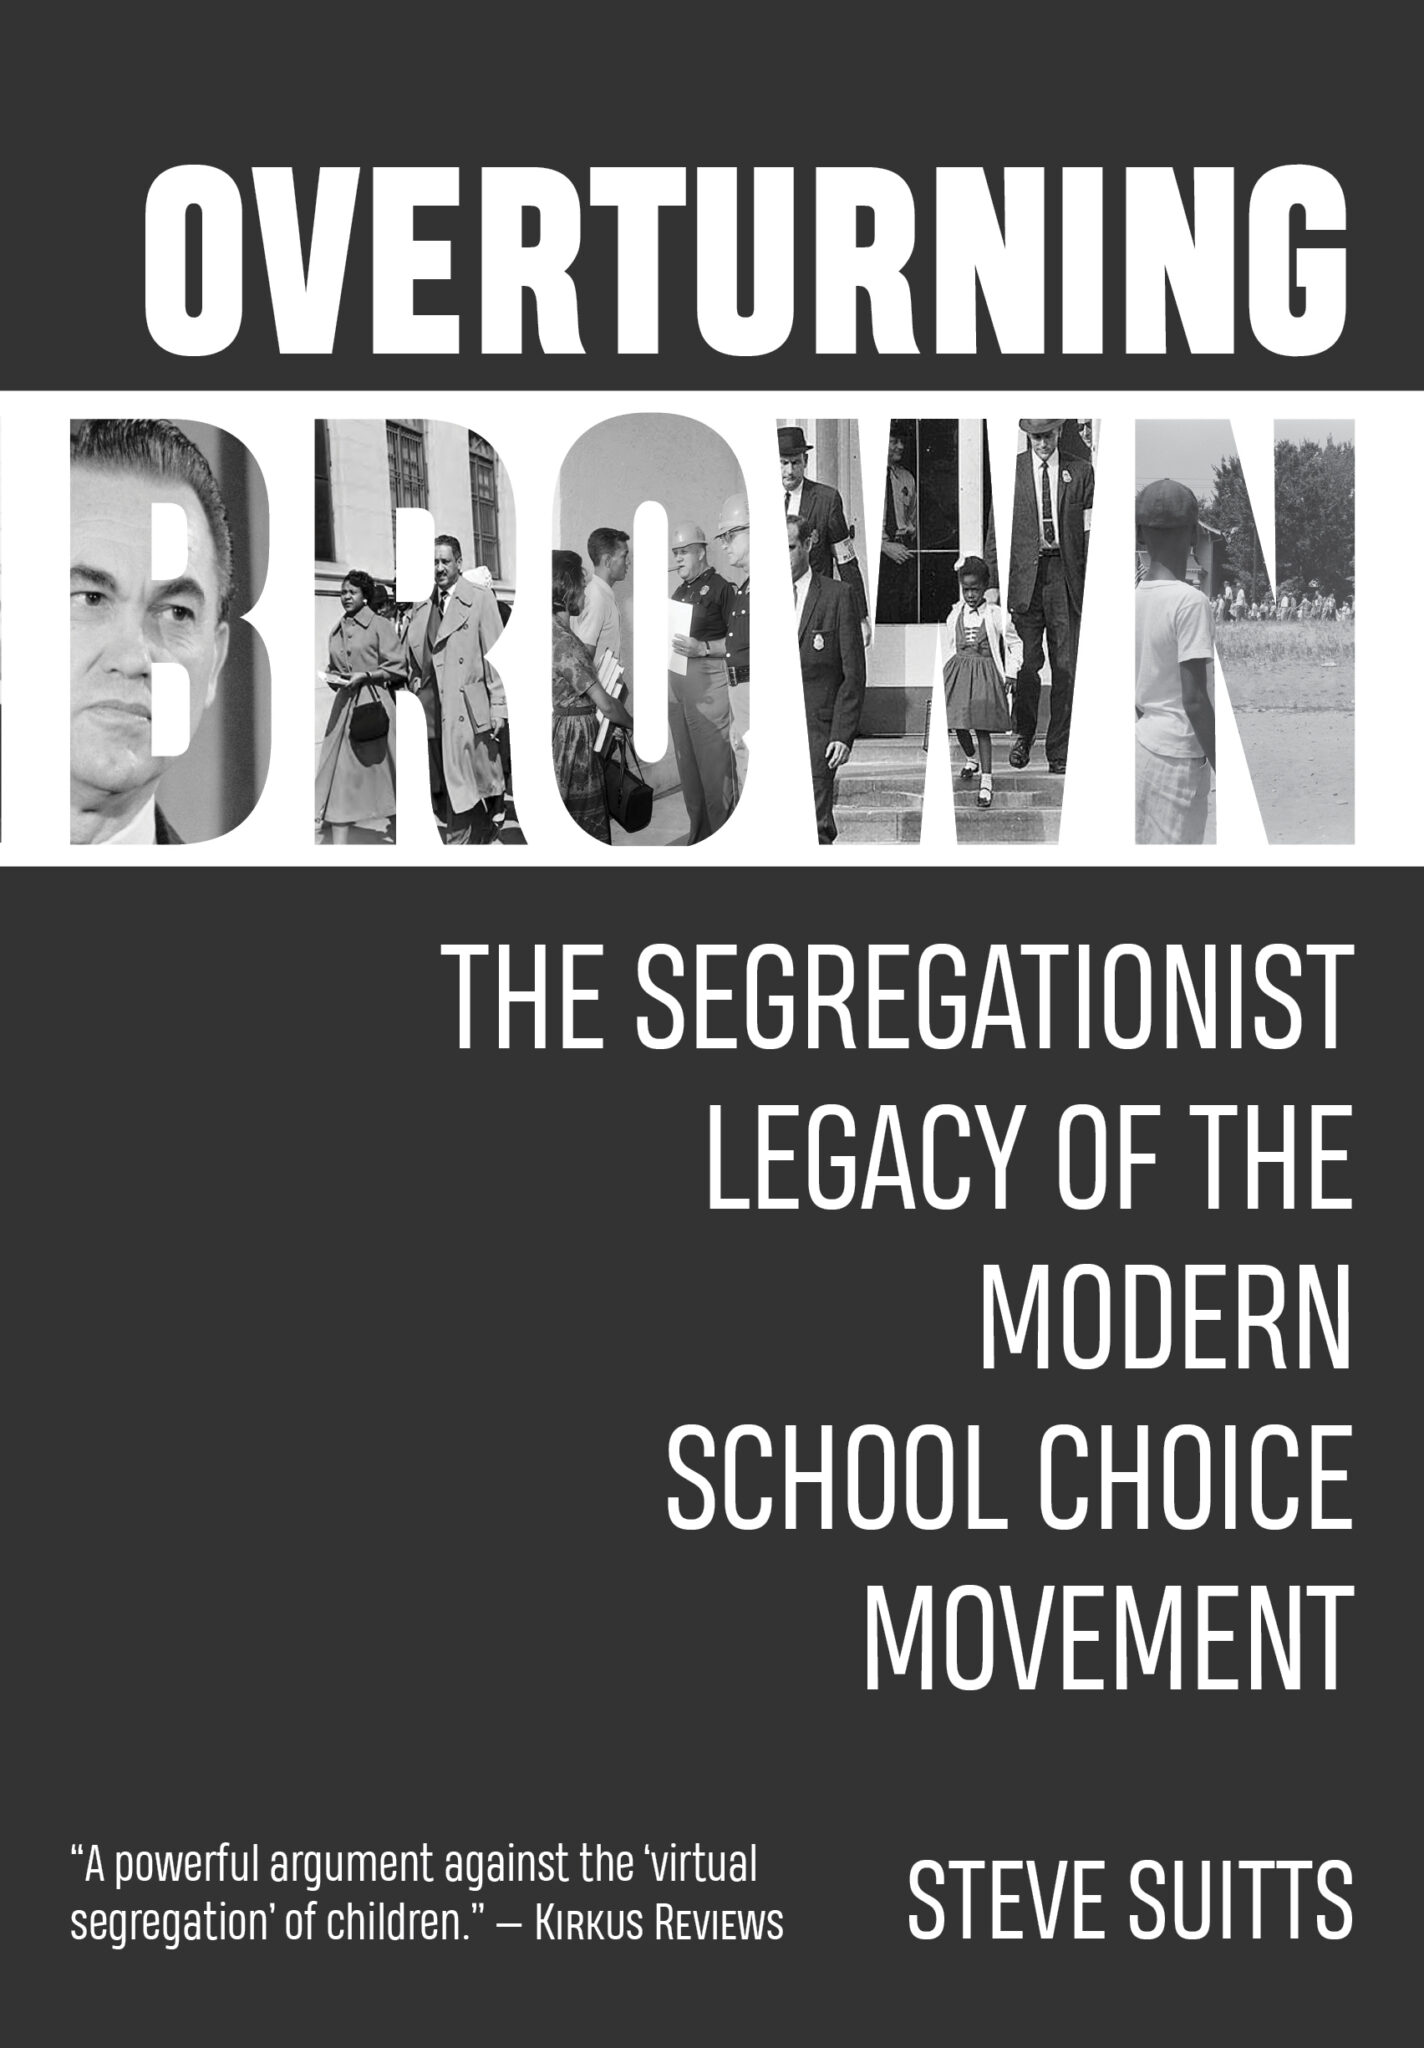 #1554: The Segregationist History Of School Choice | The Best Of Our Knowledge